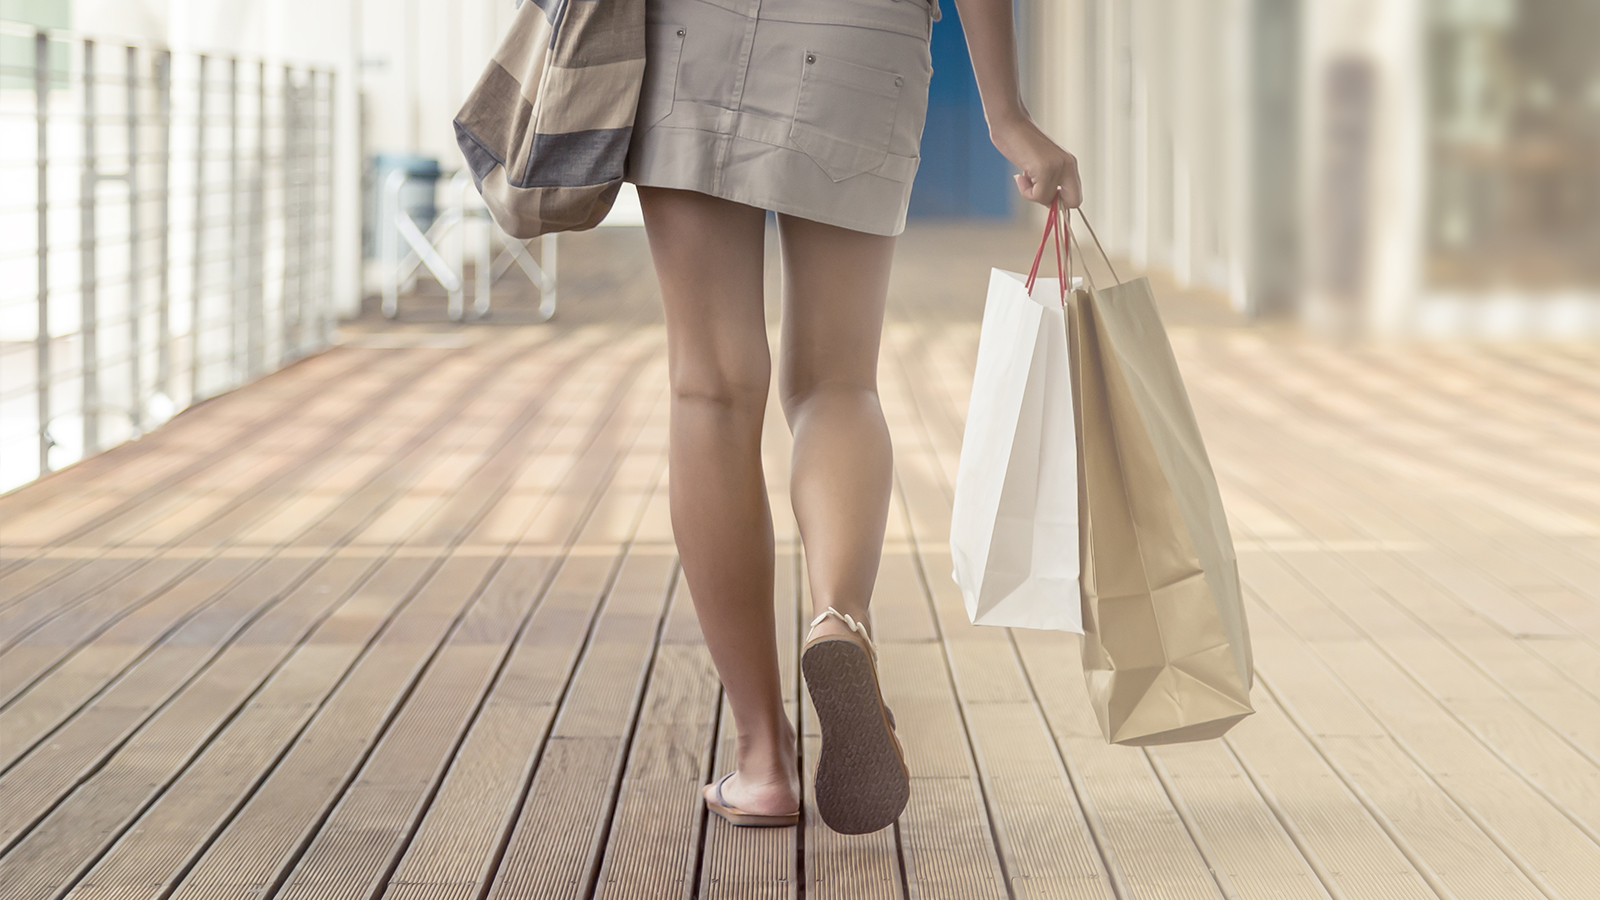 A rear shot of a woman walking on a boardwalk carrying a purse and shopping bags.